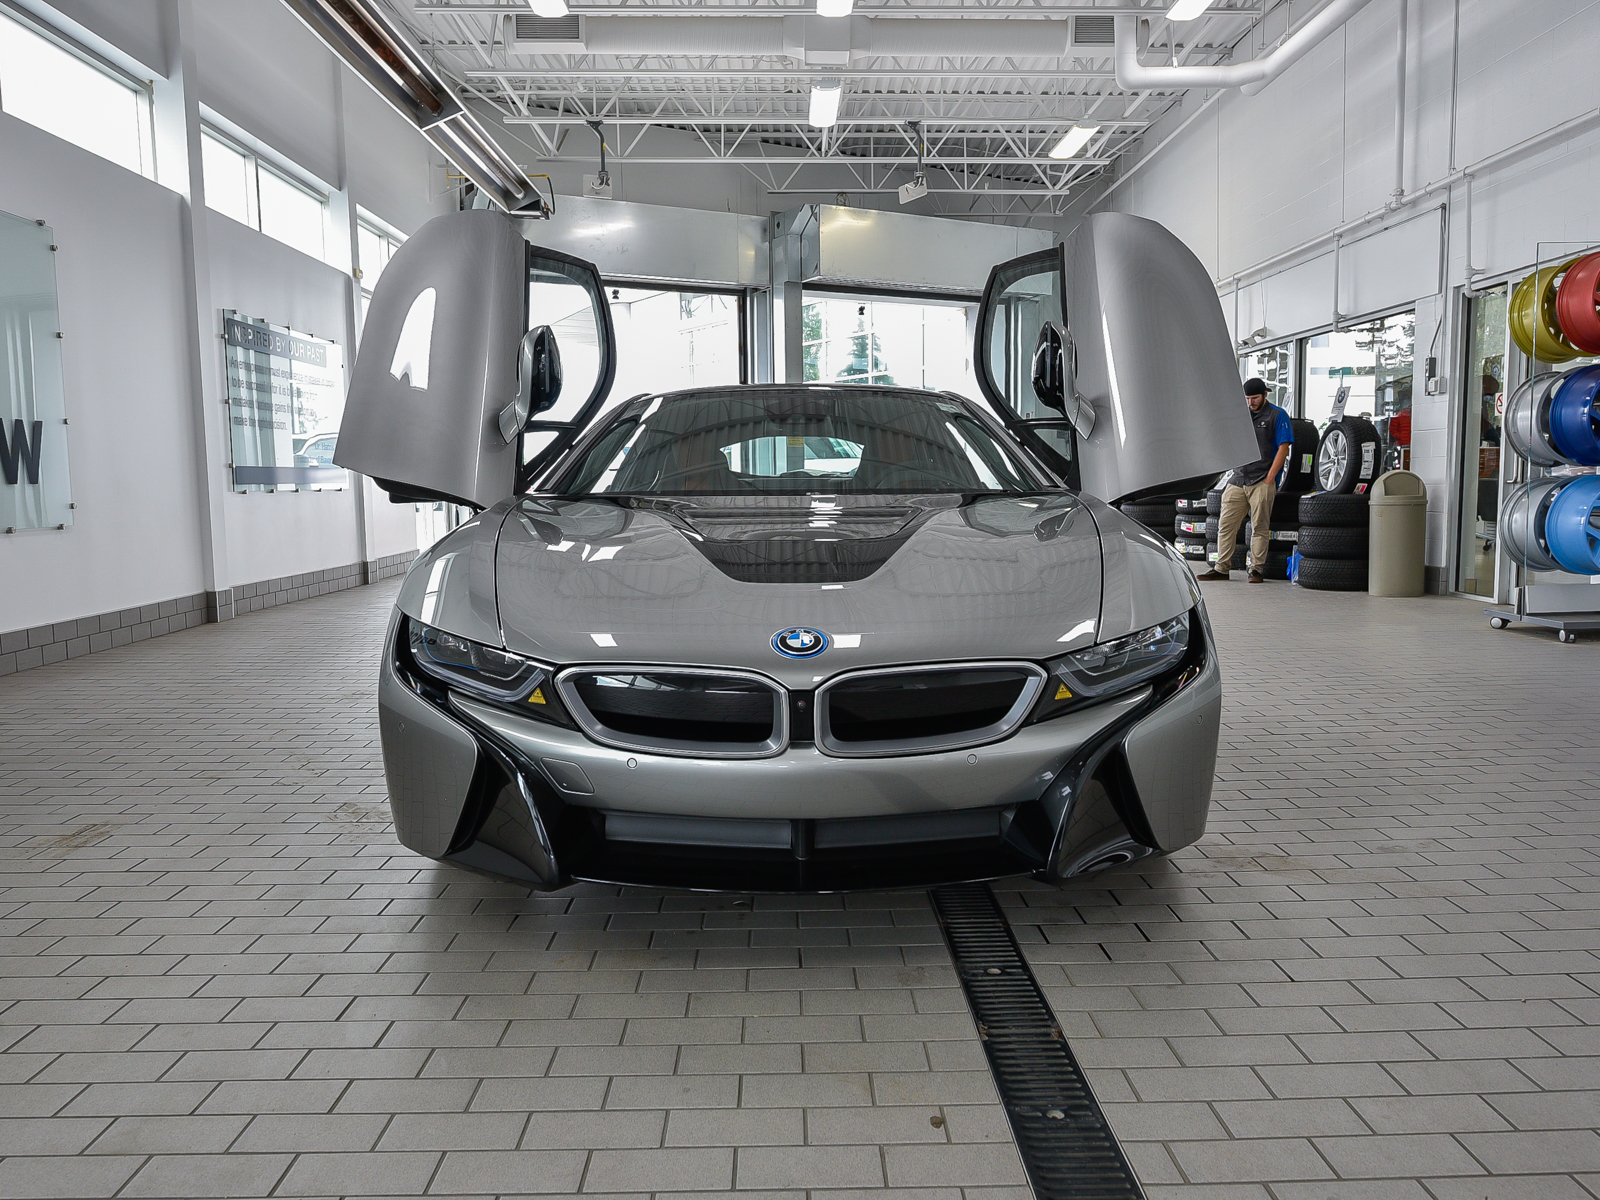 New 2019 BMW i8 Coupe Coupe in Edmonton 19I